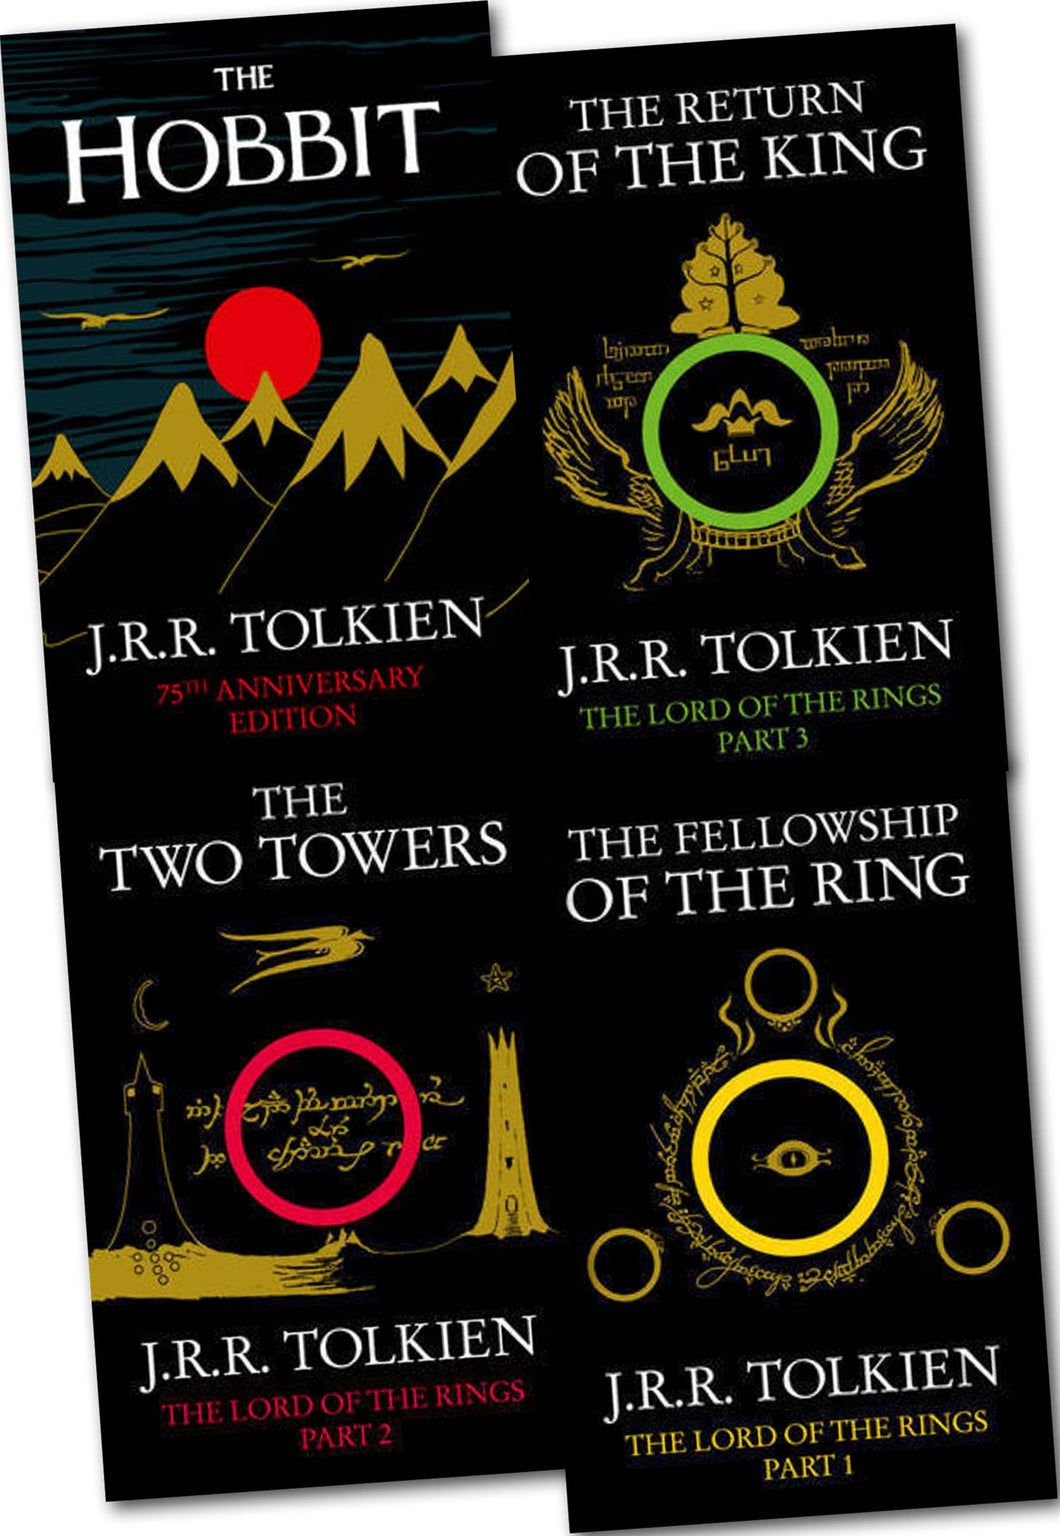 Lord of the Rings: Collection, 4 Books (Hobbit, Fellowship, Two Towers, Return) - eBook, ePub, Mobi, PDF (Fast instant delivery)